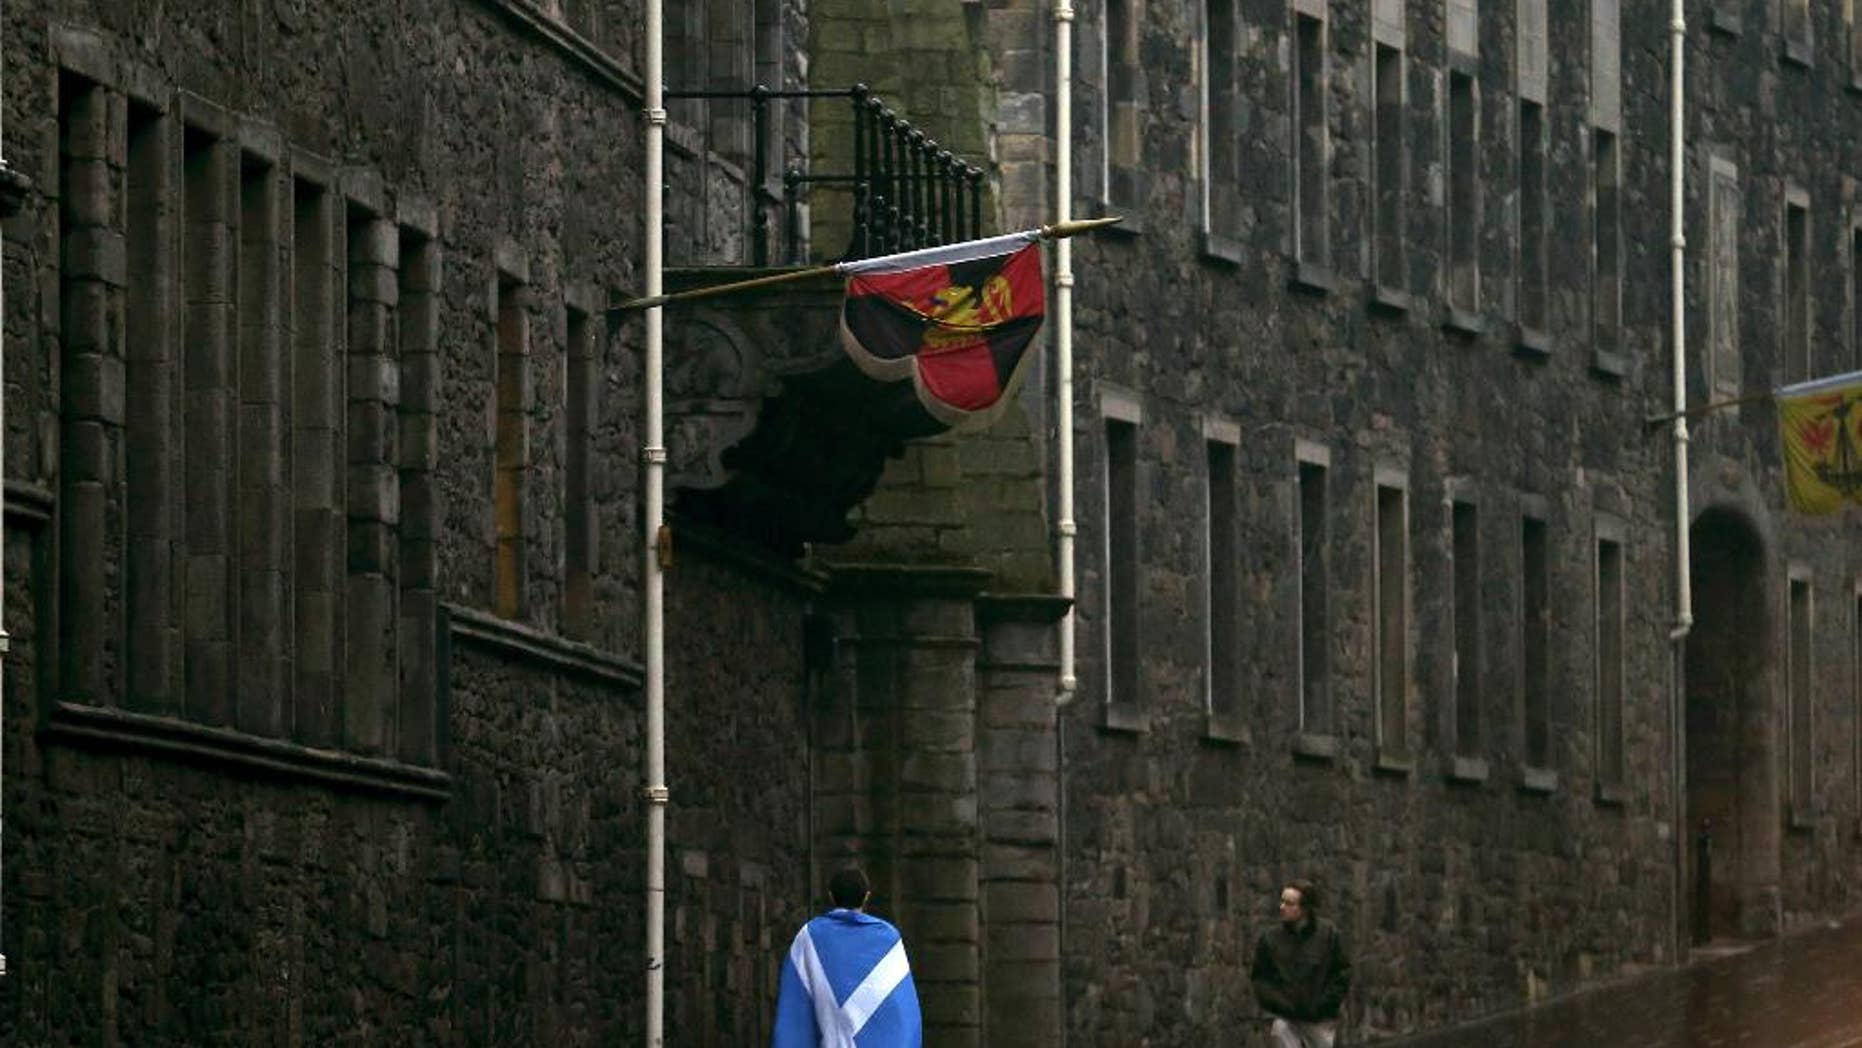 A man draped in a Saltire walks up the Royal Mile in Edinburgh, Scotland, Friday, Sept. 19, 2014. Scottish voters have rejected independence and decided that Scotland will remain part of the United Kingdom. The result announced early Friday was the one favored by Britain's political leaders, who had campaigned hard in recent weeks to convince Scottish voters to stay. It dashed many Scots' hopes of breaking free and building their own nation. (AP Photo/Scott Heppell)